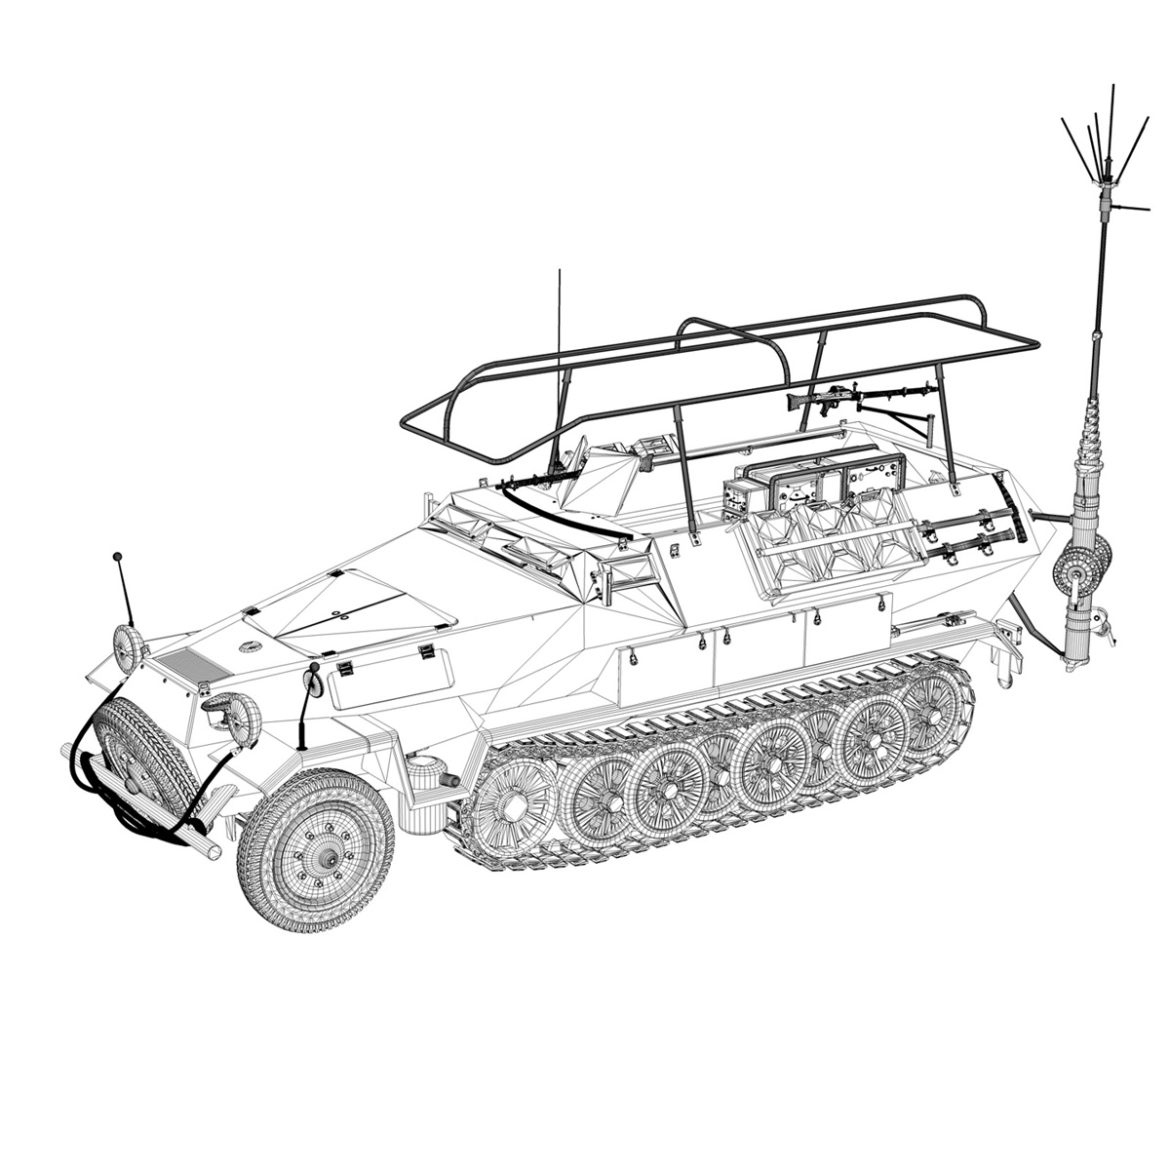 sdkfz 251 ausf.b – communications vehicle – 15pd 3d model 3ds fbx lwo lw lws obj c4d 305997